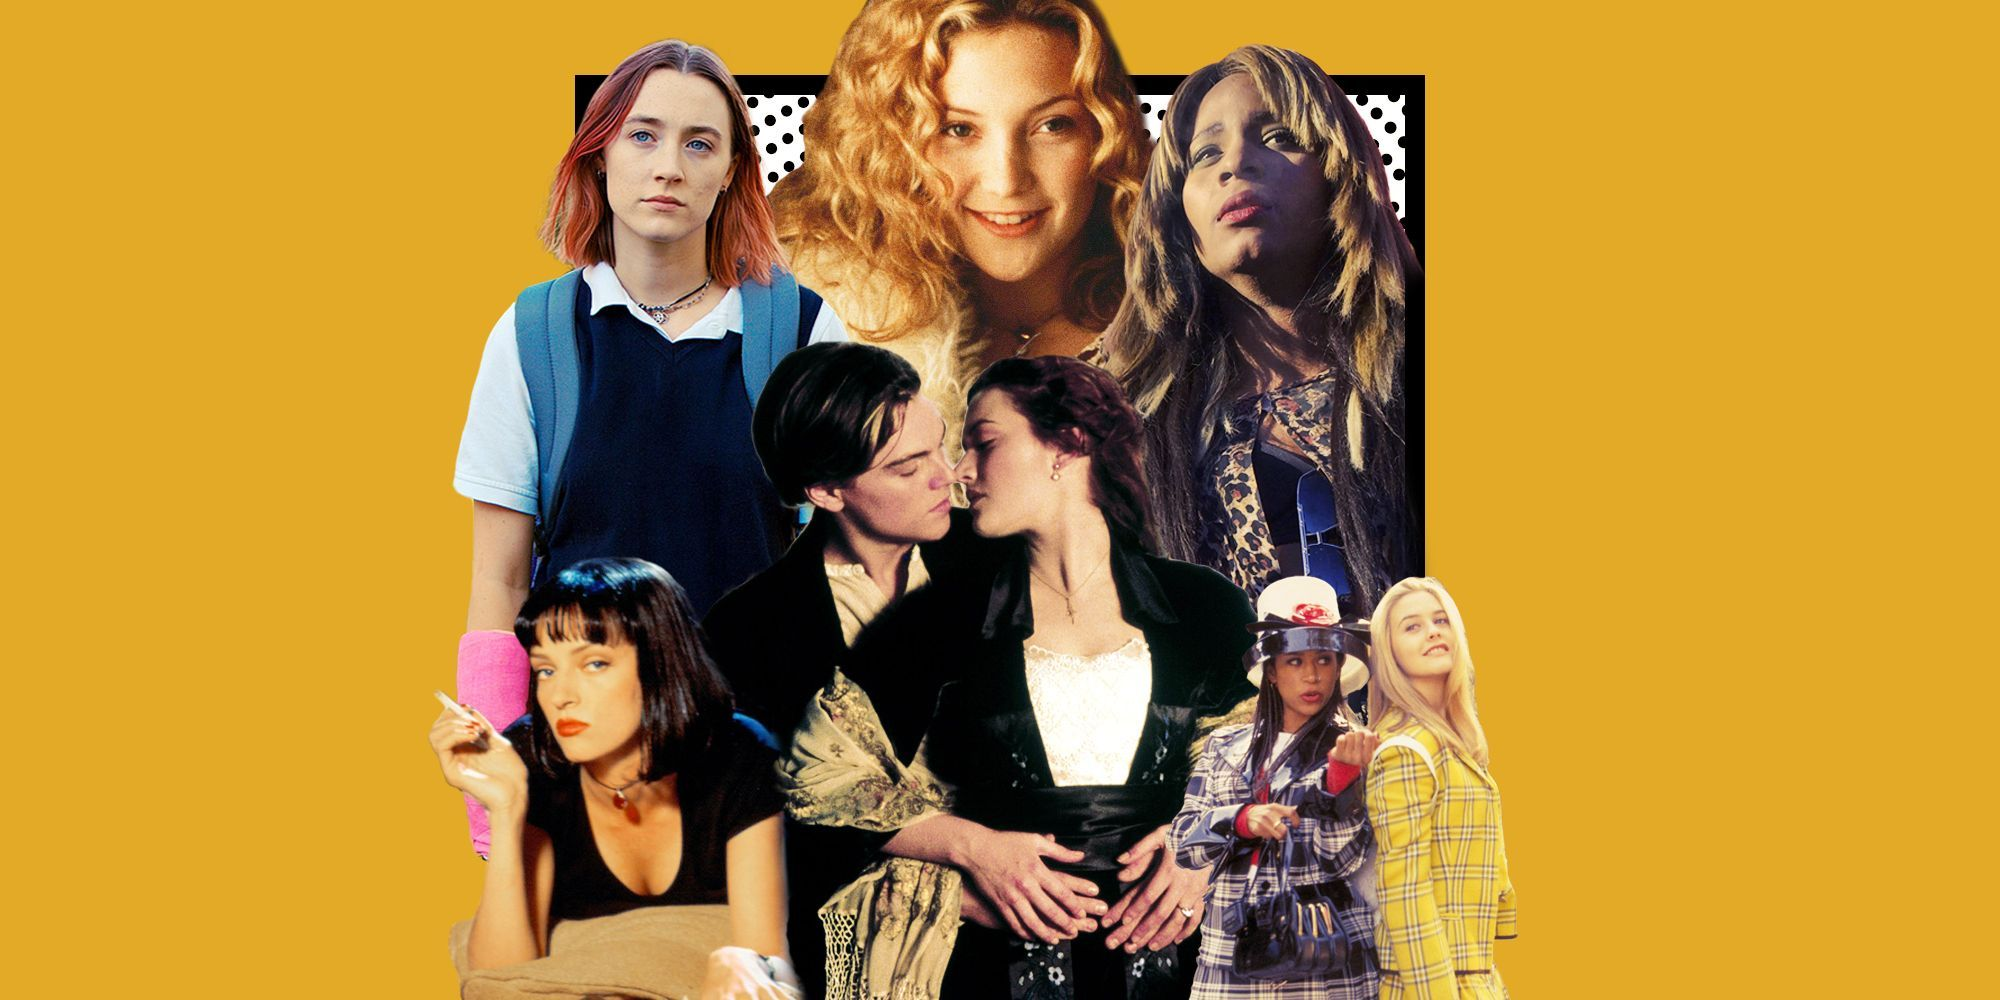 65 Movies You Have to Watch at Least Once in Your Life